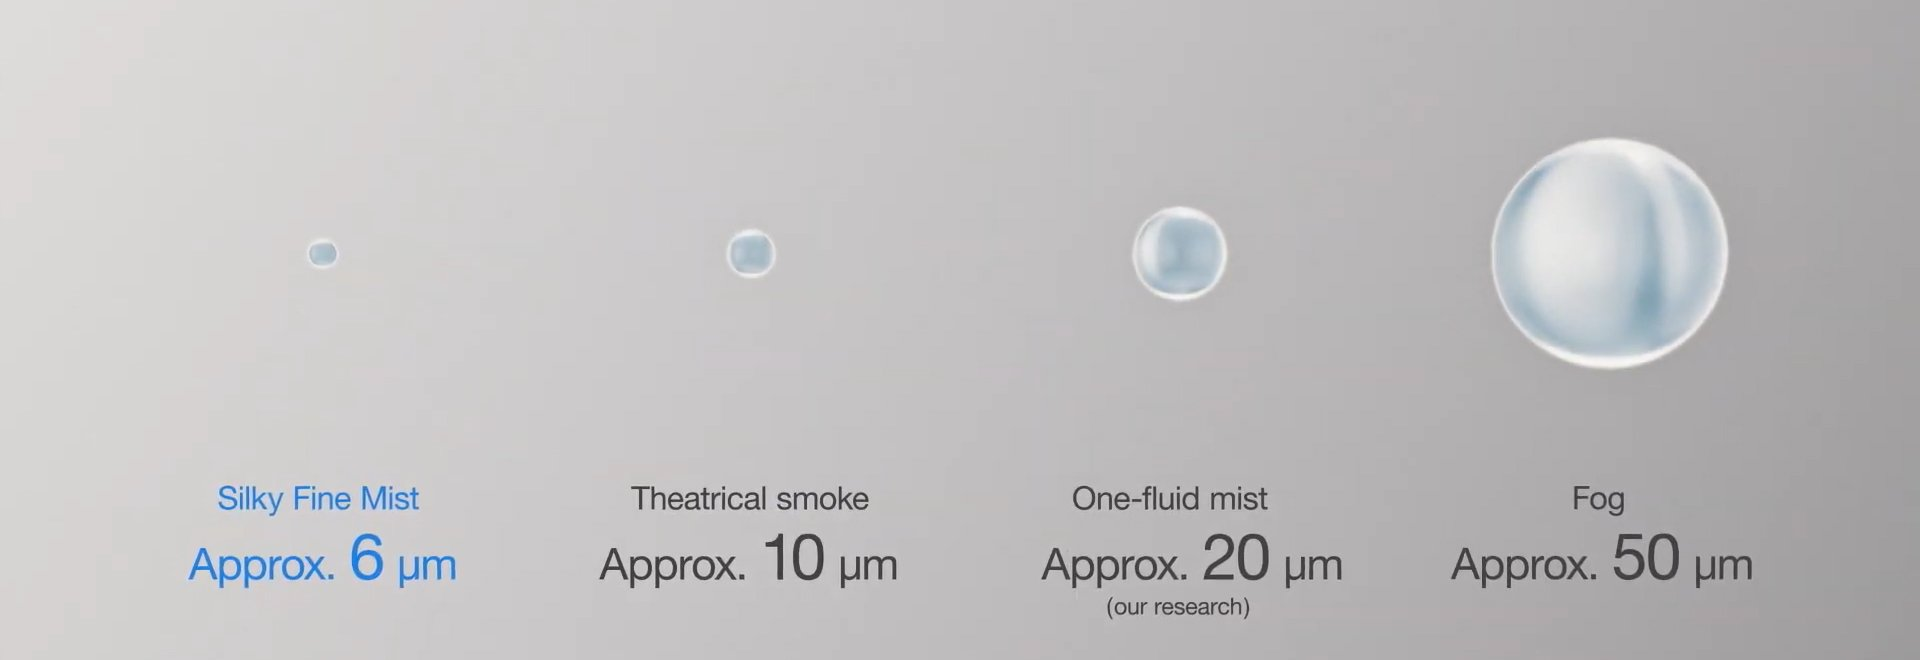 Comparison of the size of the Silky Fine Mist produced by Green AC Flex and other substances (1 micrometer = 0.001 millimeter).